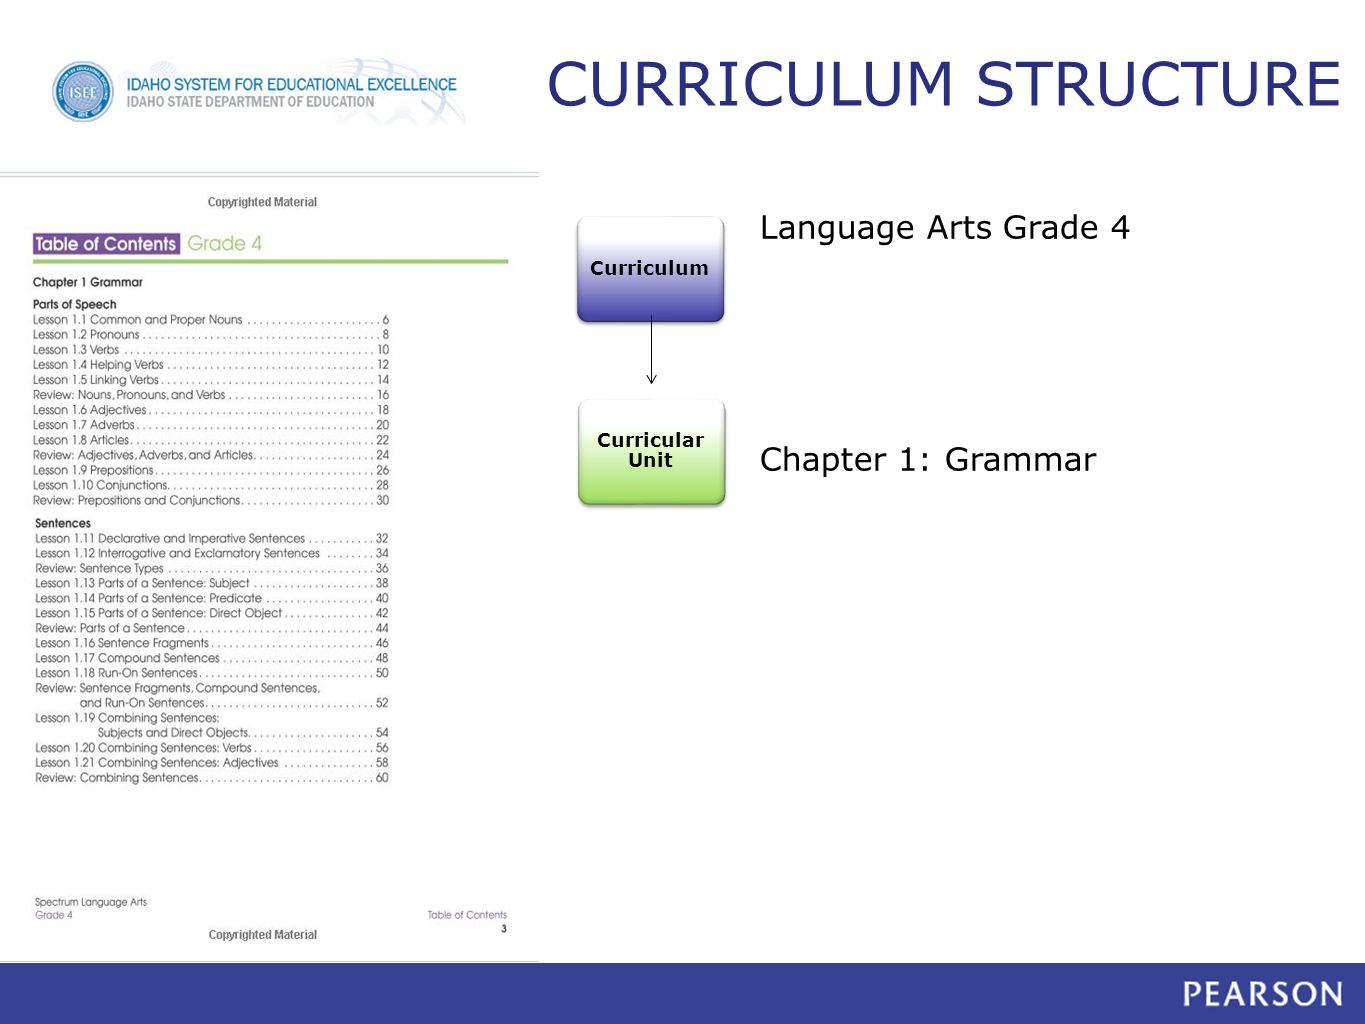 Chapter 1: Grammar Curricular Unit CURRICULUM STRUCTURE Curriculum Language Arts Grade 4